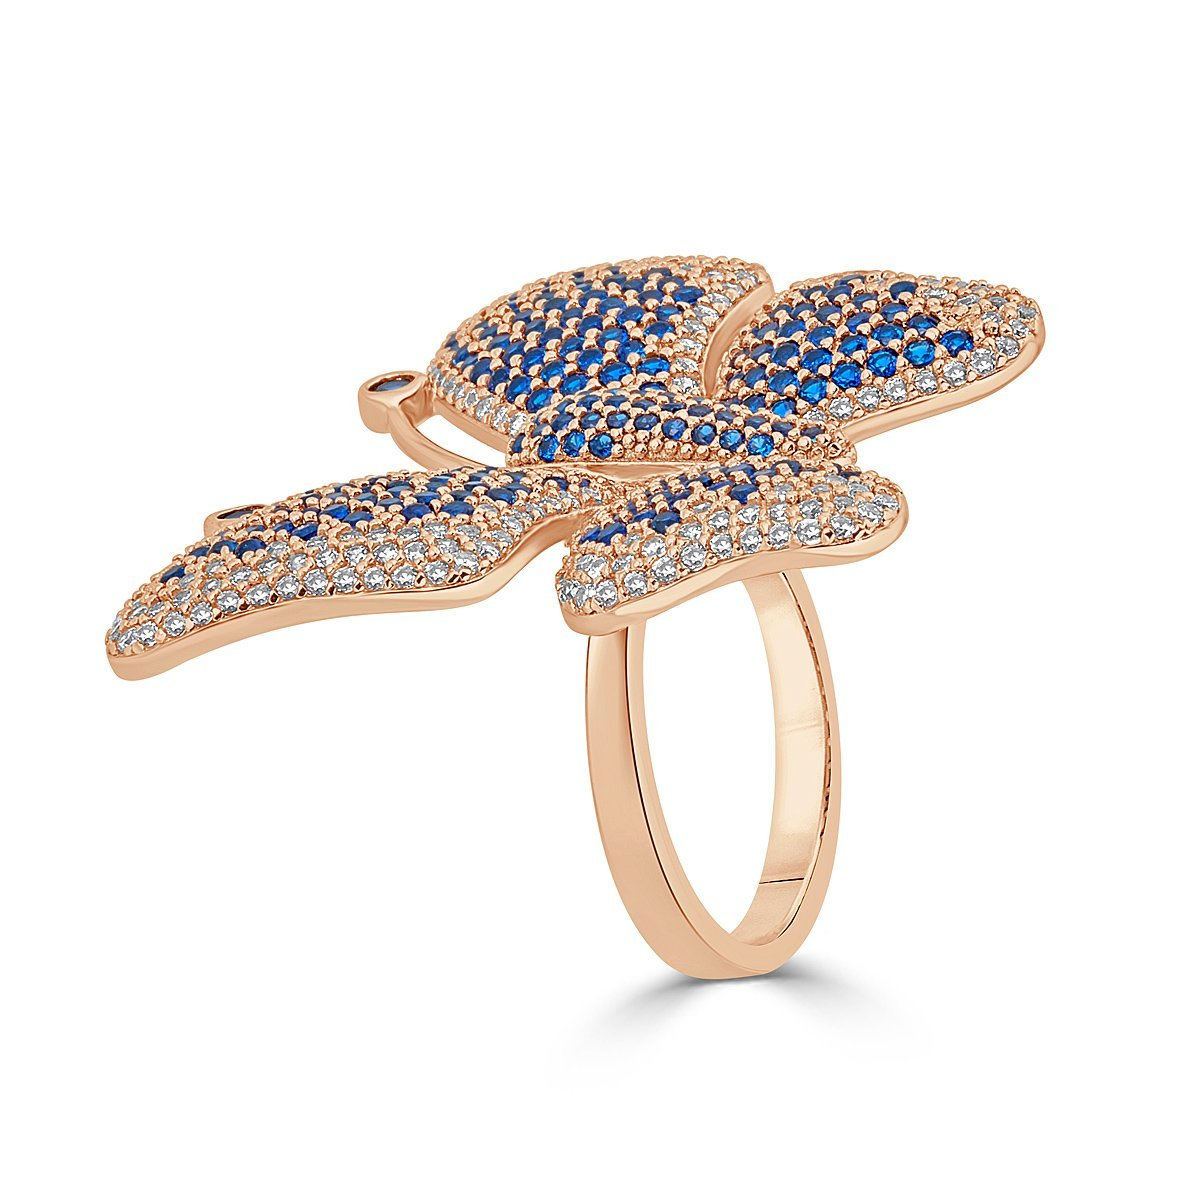 Rose Gold Plated Sterling Silver Cubic Zirconia Pave Butterfly Statement Ring by Caratina (Image #1)